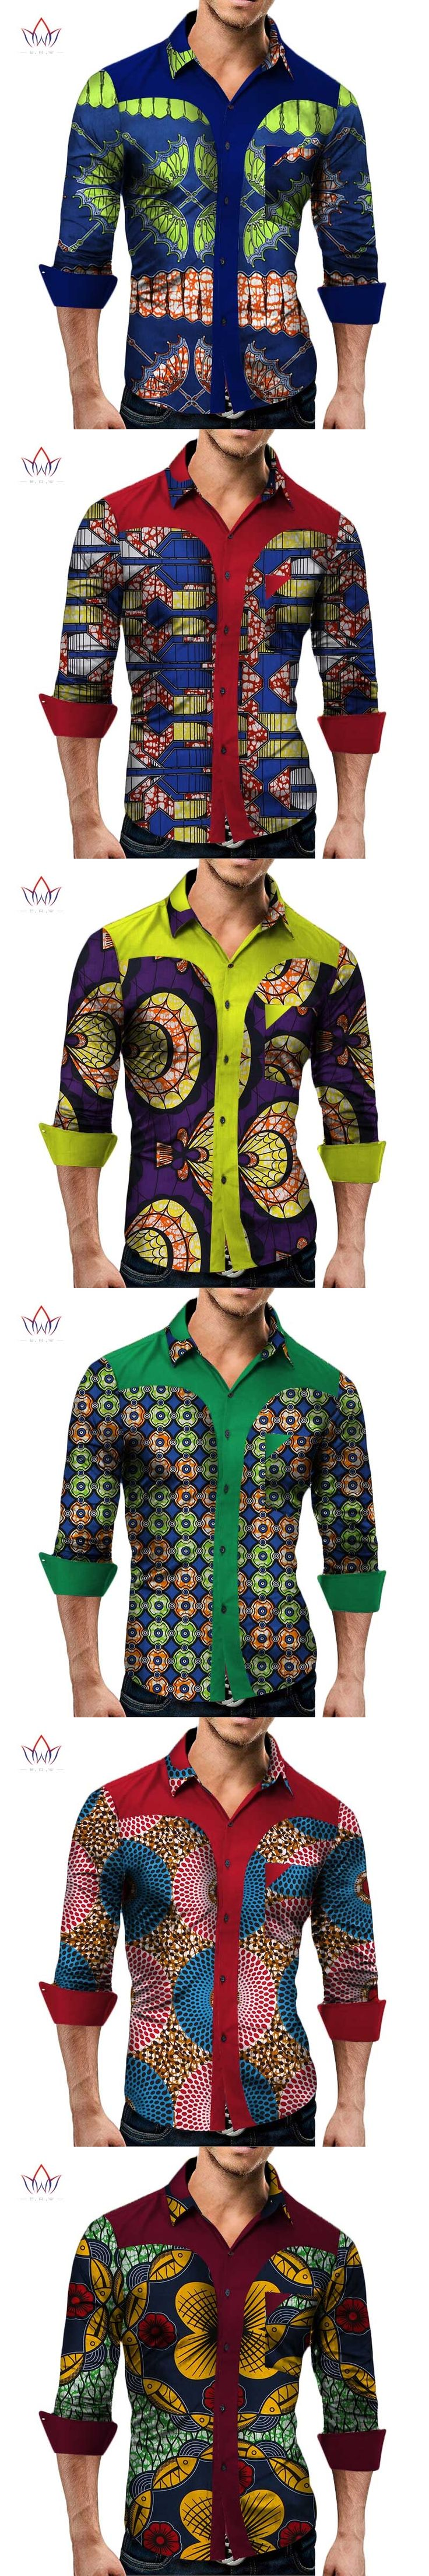 Plus Size New Summer 2017 African Shirt for Men Dashiki Long Sleeve African Clothes Patchwork Casual Style Men Shirt BRW WYN349